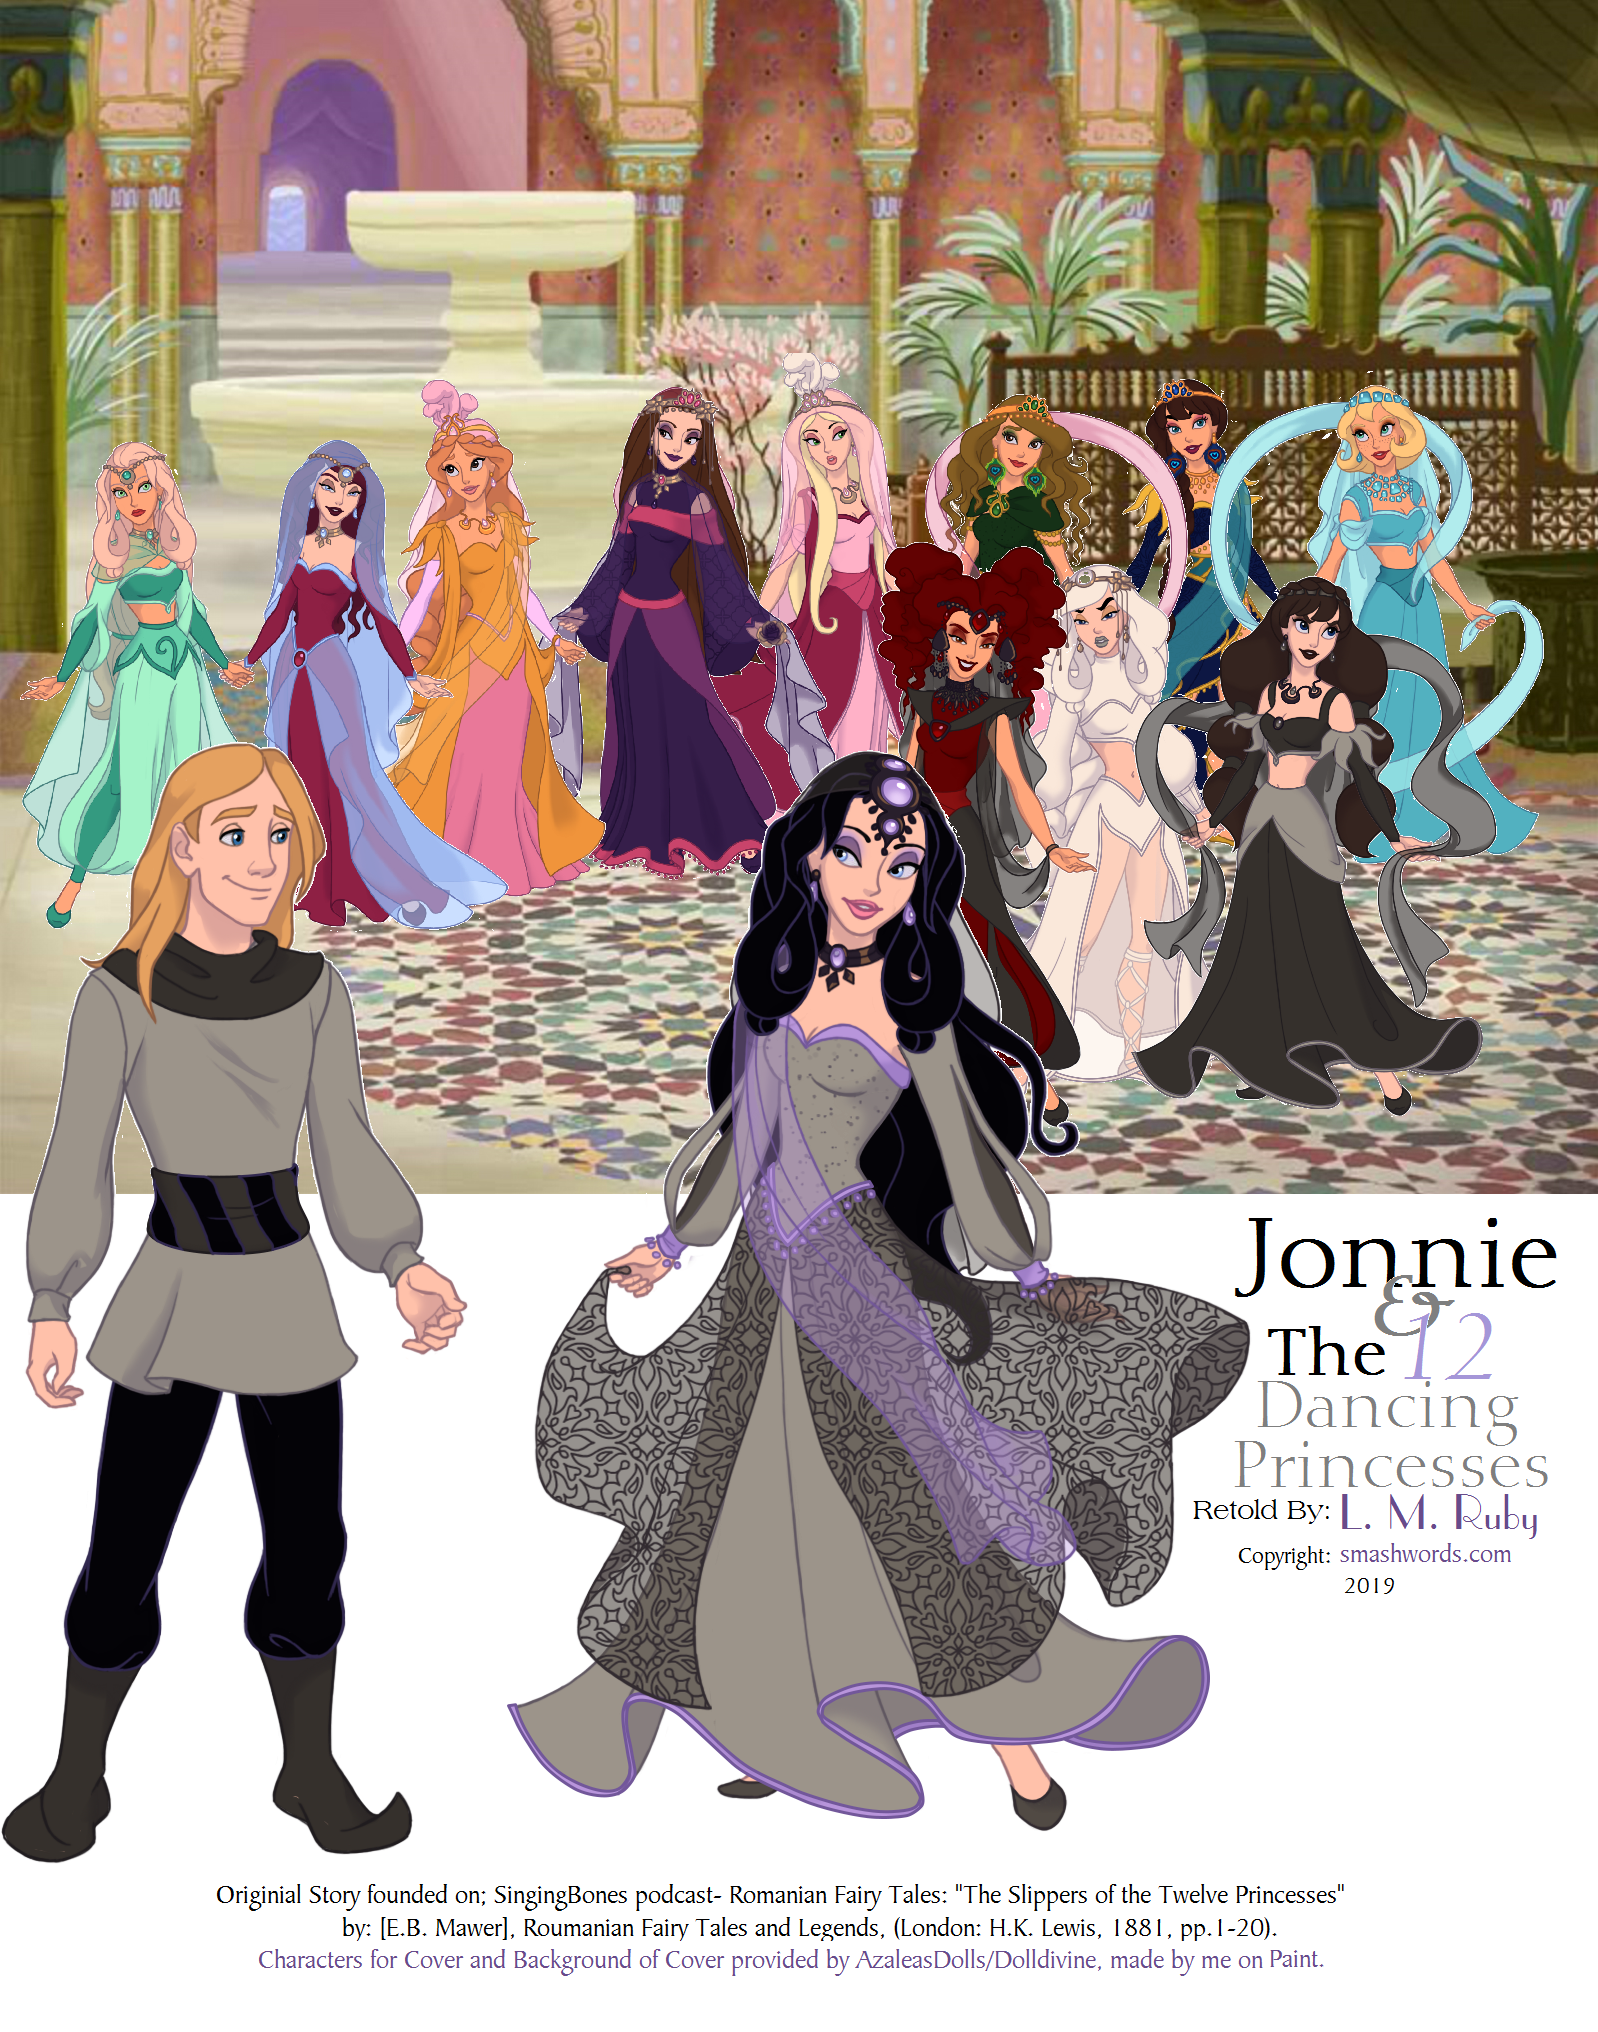 Smashwords Jonnie And The 12 Dancing Princesses A Book By L M